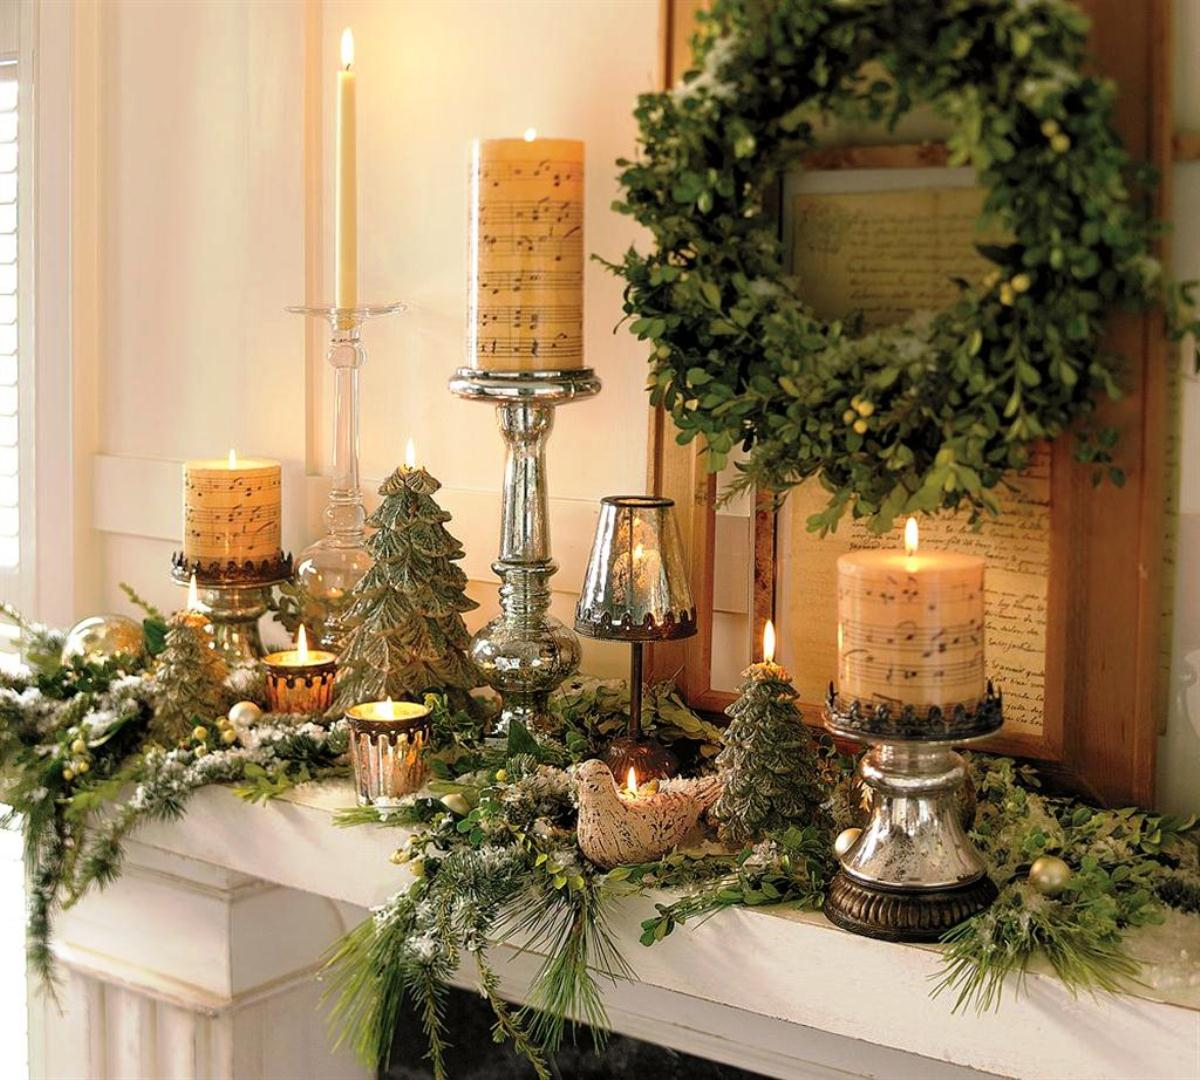 50 Best Indoor Decoration Ideas For Christmas In 2020